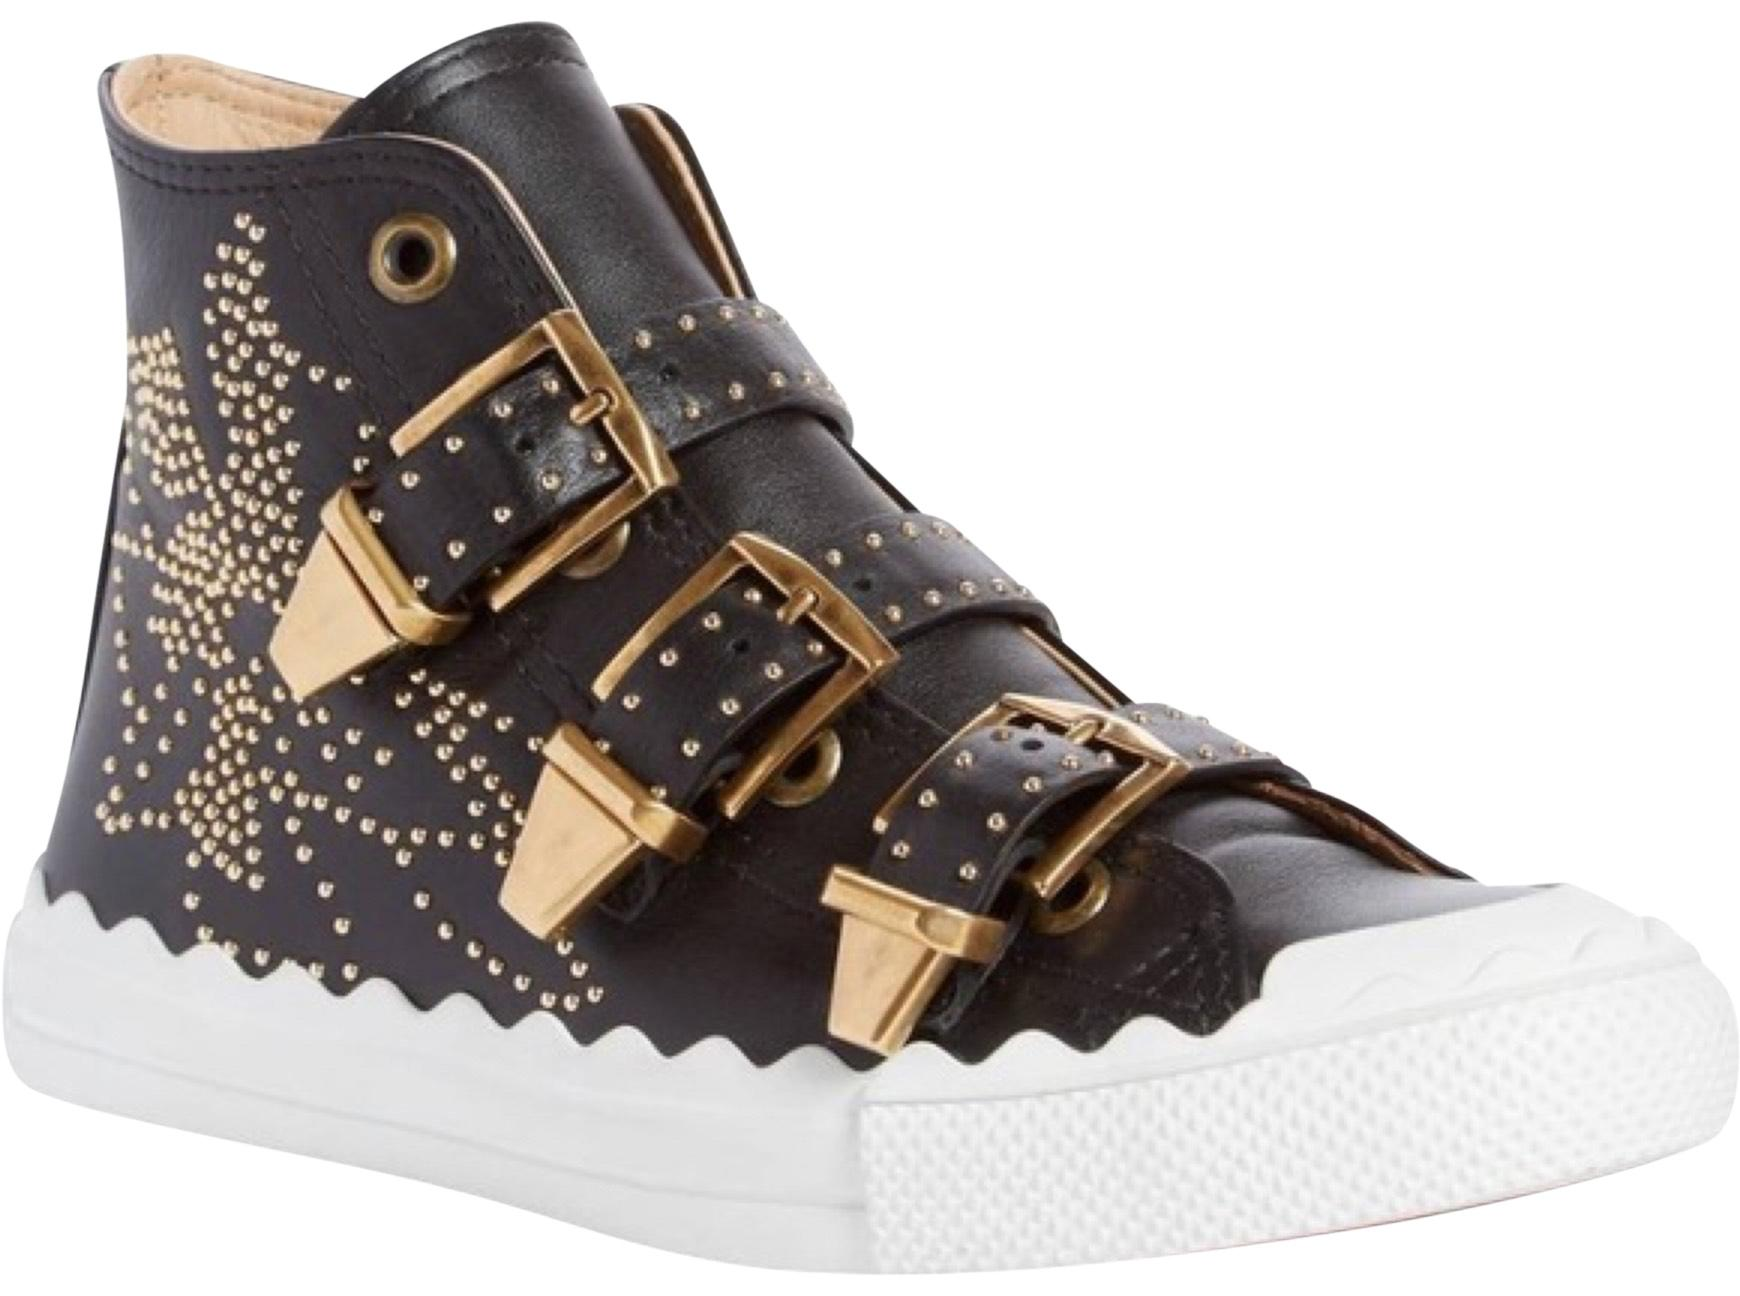 Chloé Black and Gold Kyle Studded Leather Sneakers Sneakers Size US 11 Regular (M, B)